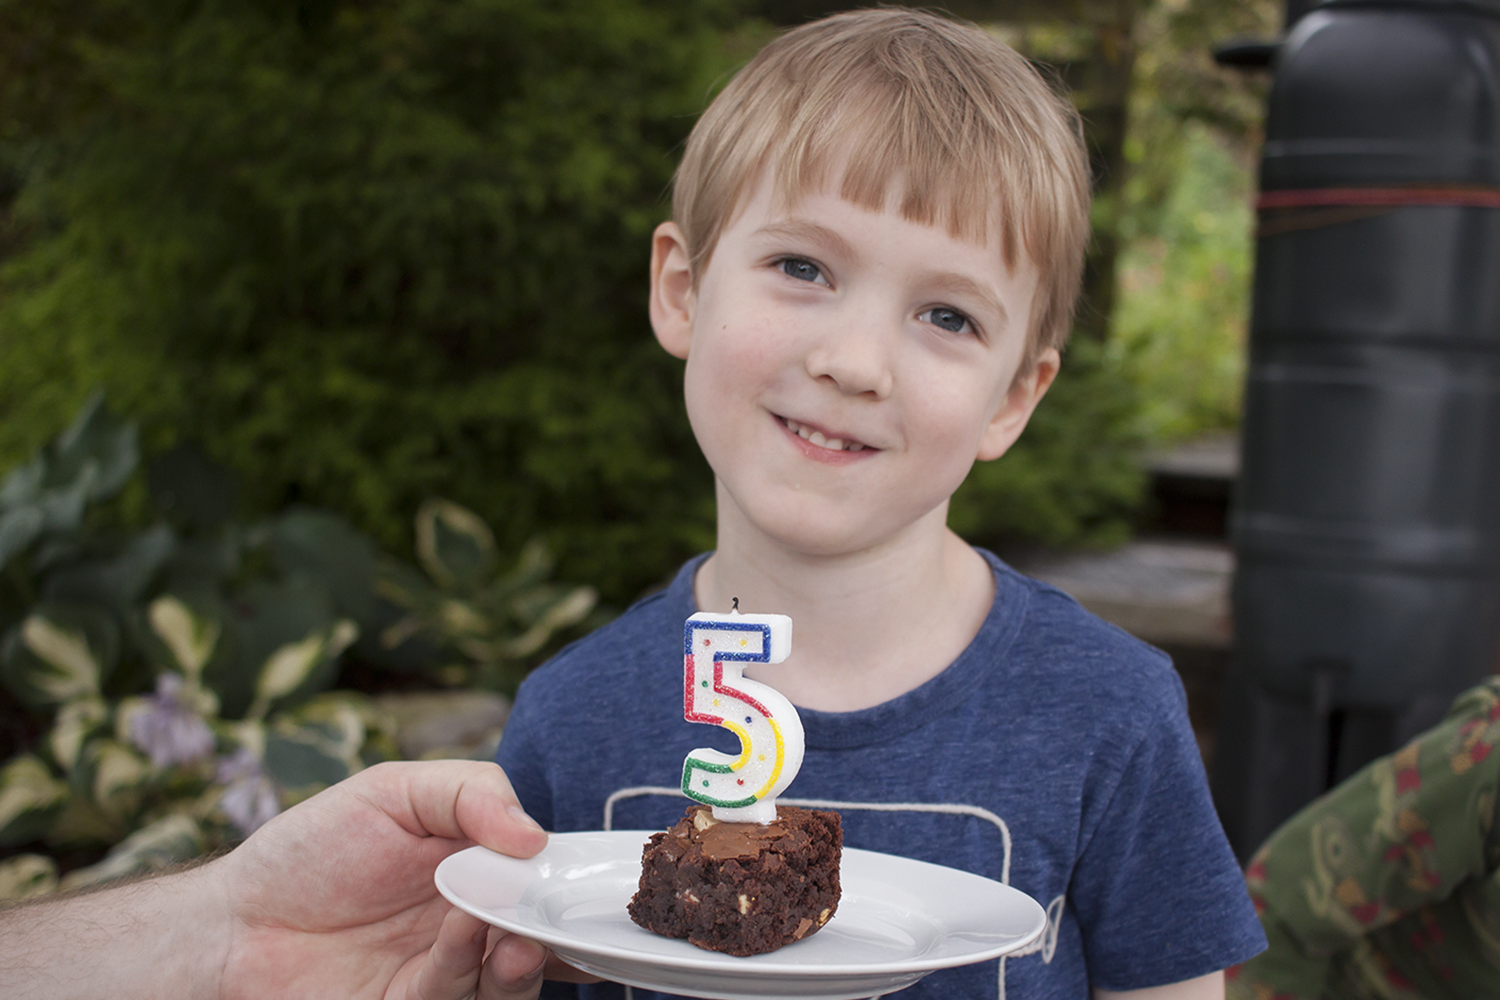 Gabe with his 5th birthday cake